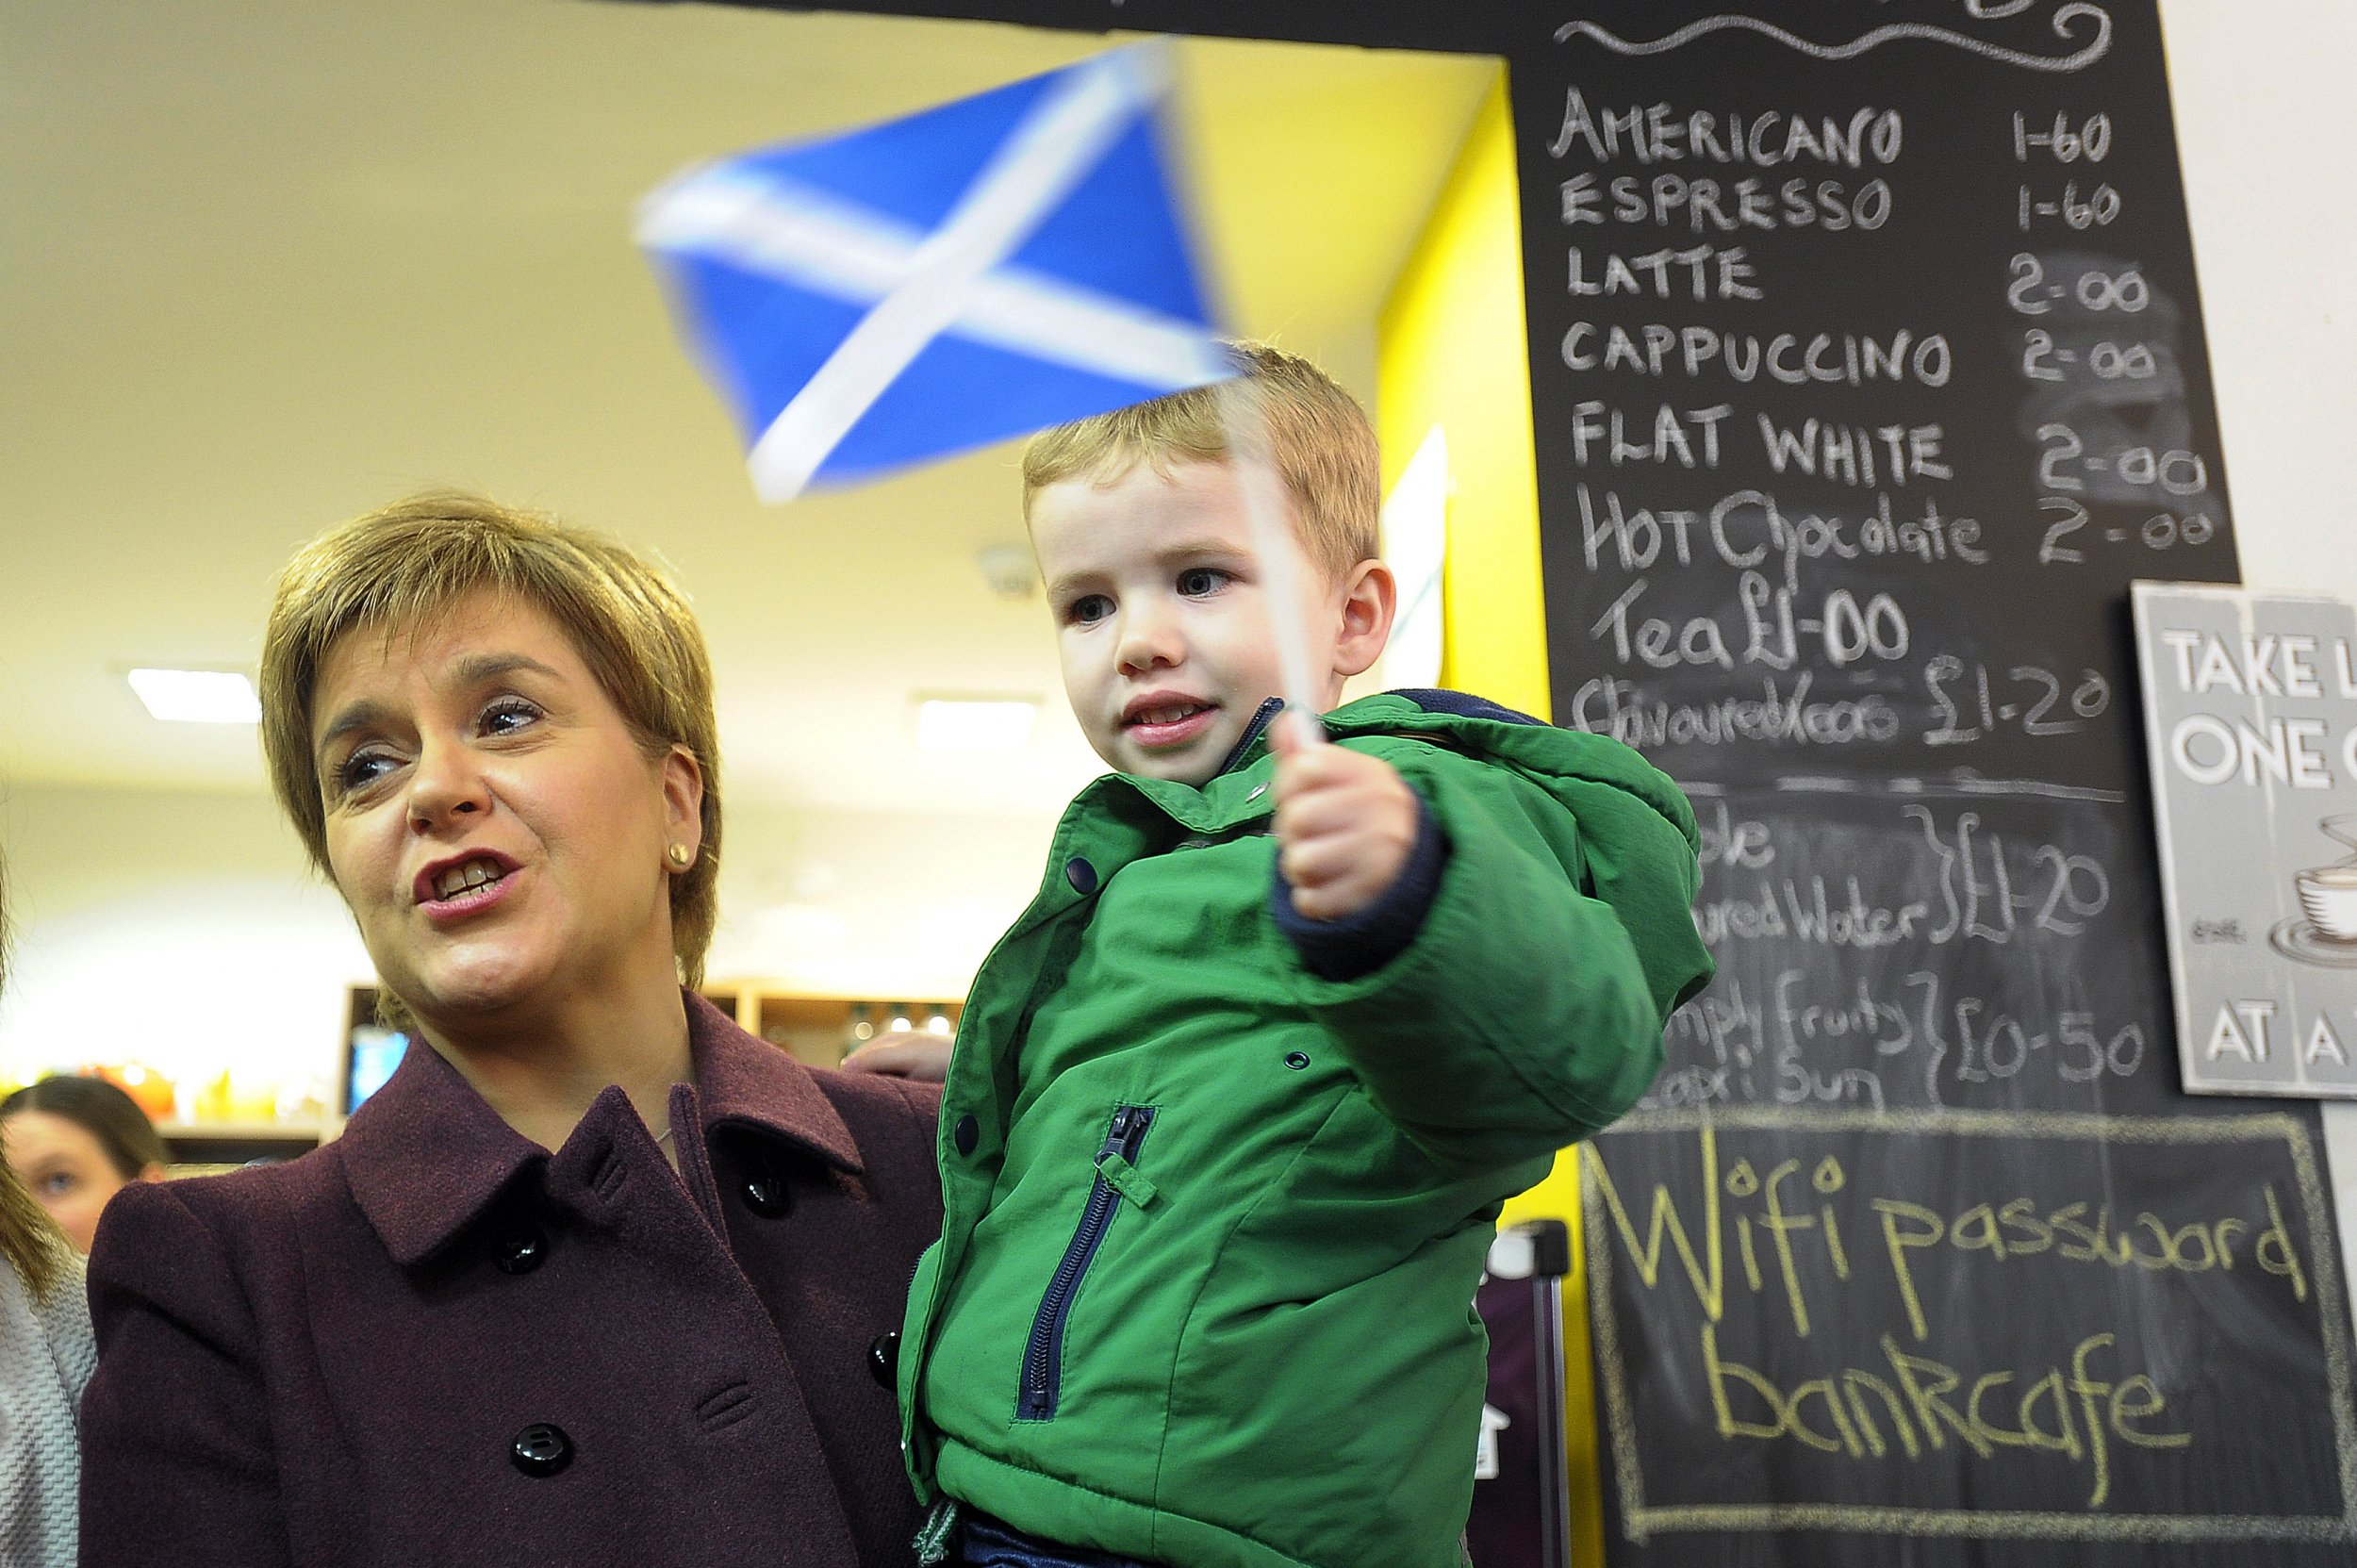 is hitting your child illegal in the u s scotland latest to ban